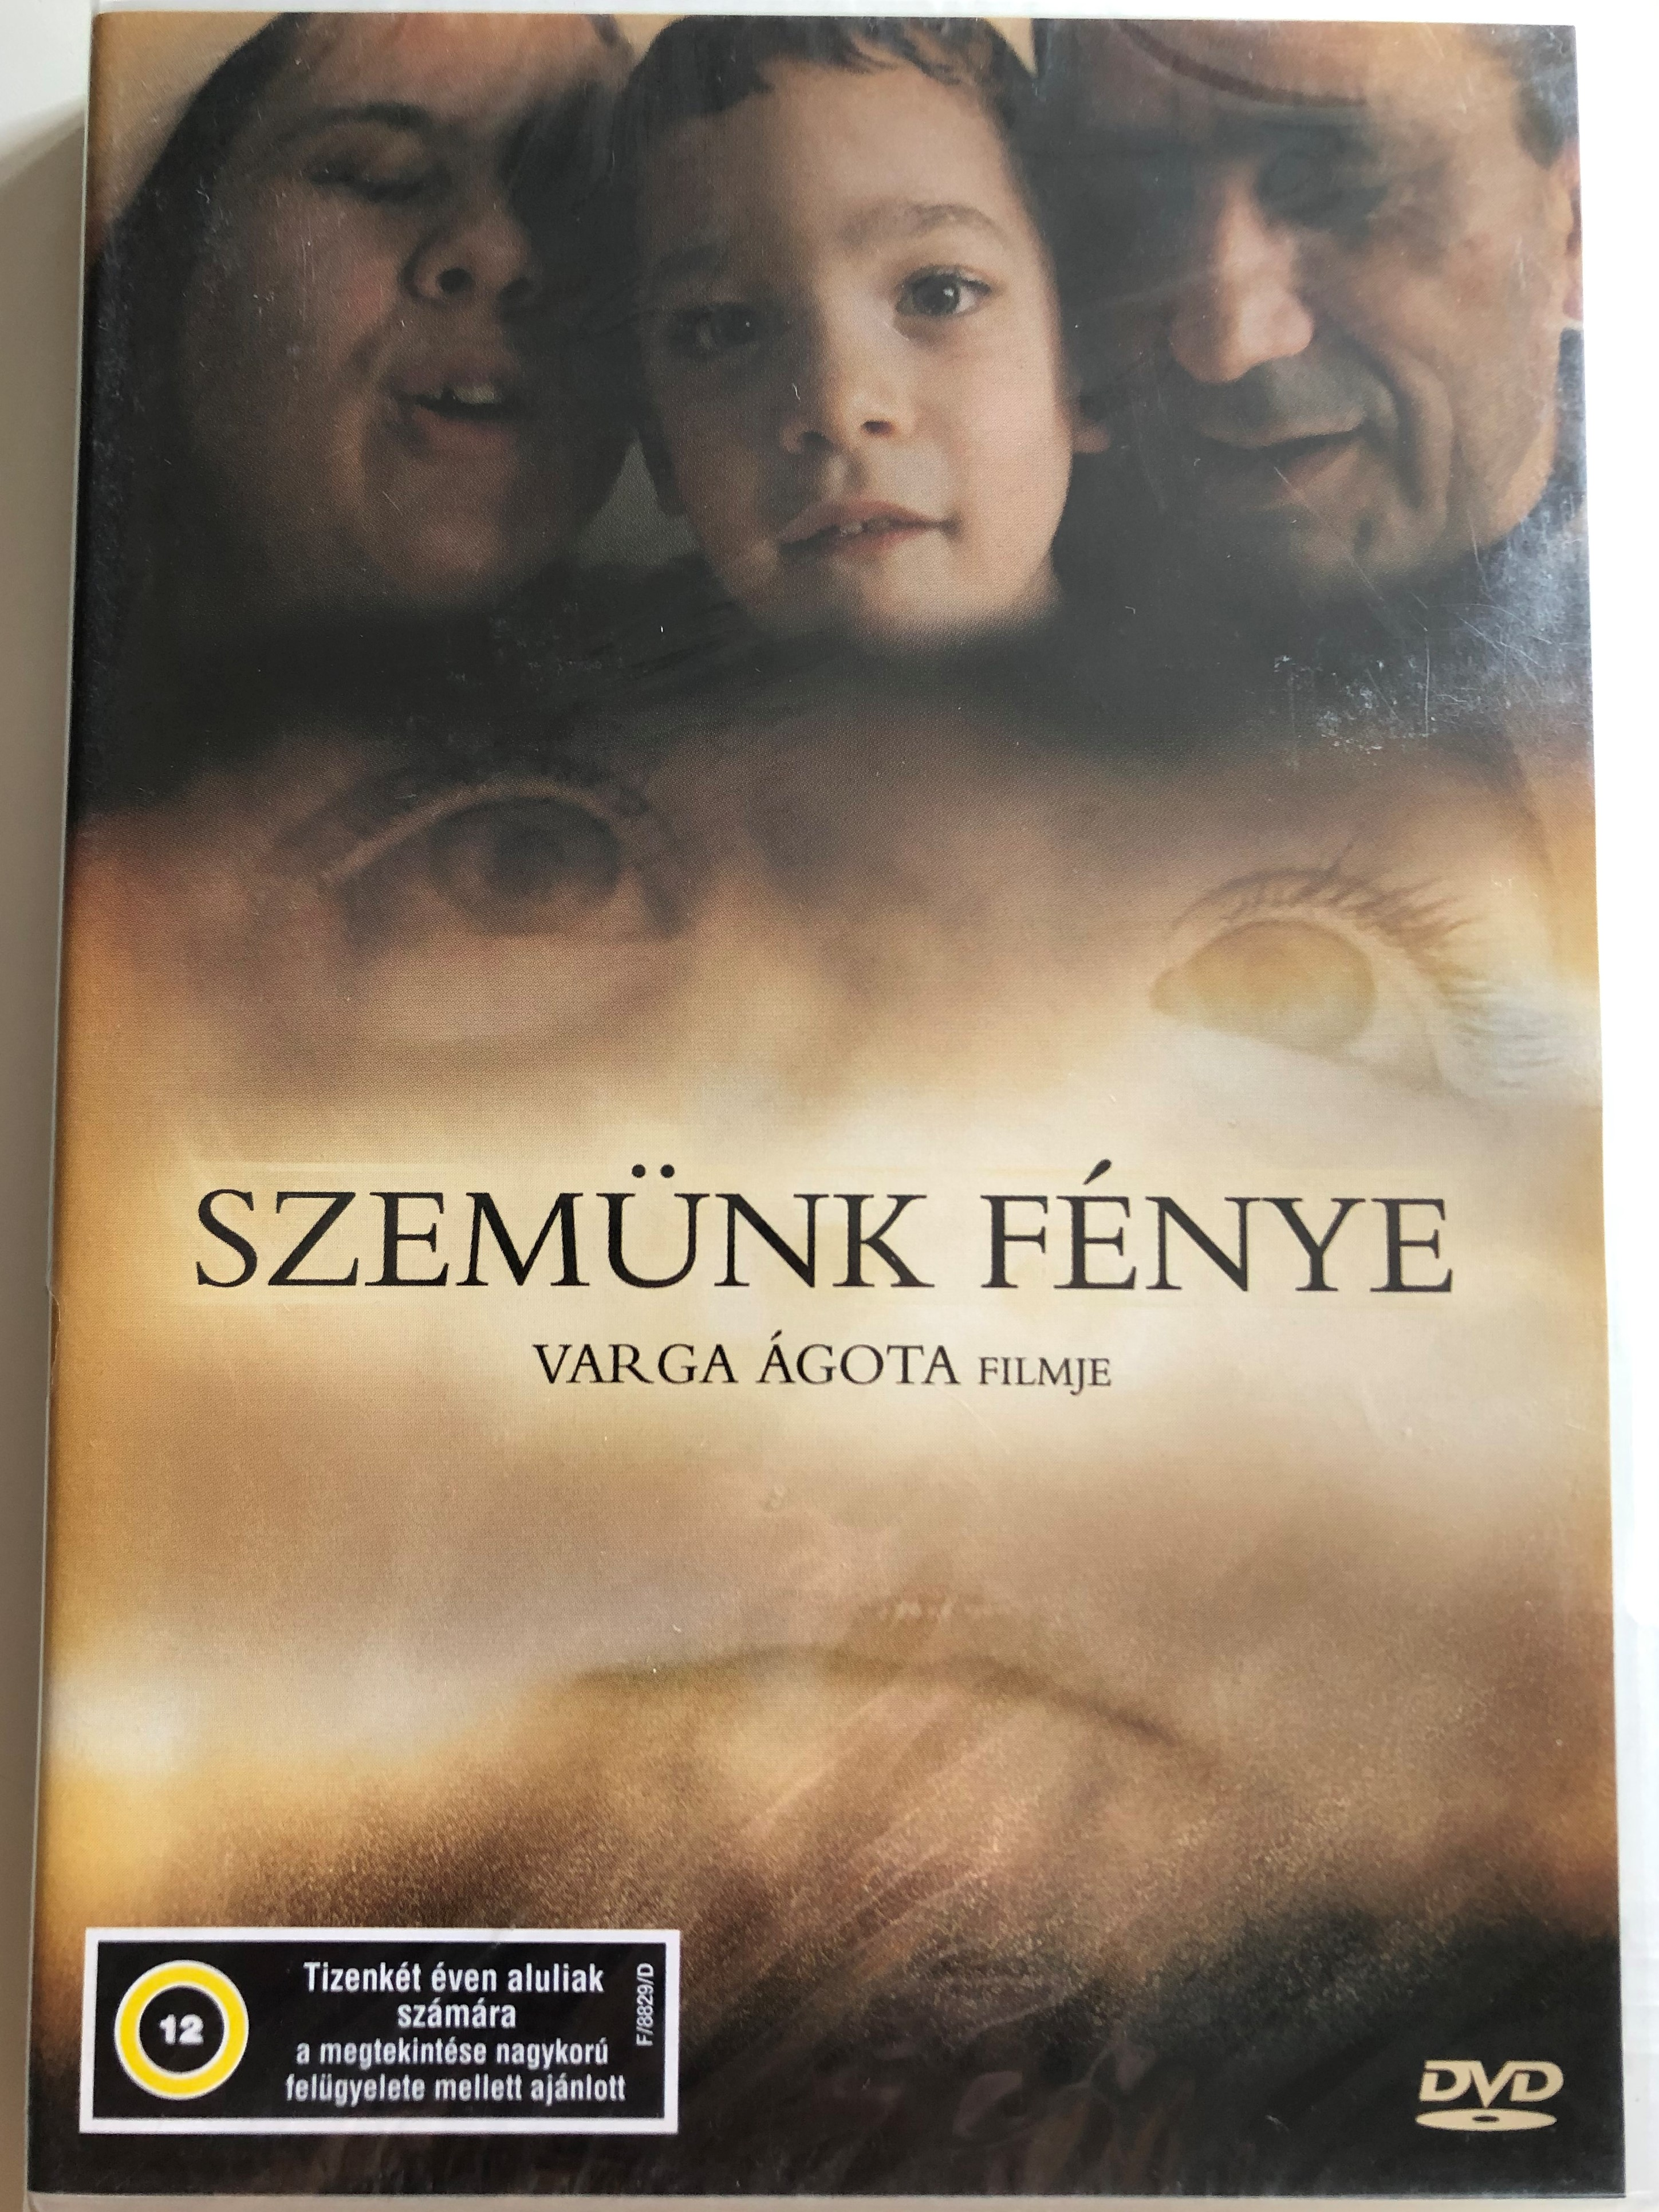 szem-nk-f-nye-dvd-2005-2009-the-apple-of-our-eye-directed-by-varga-gota-wondrous-documentary-about-a-boy-with-blind-parents-1-.jpg